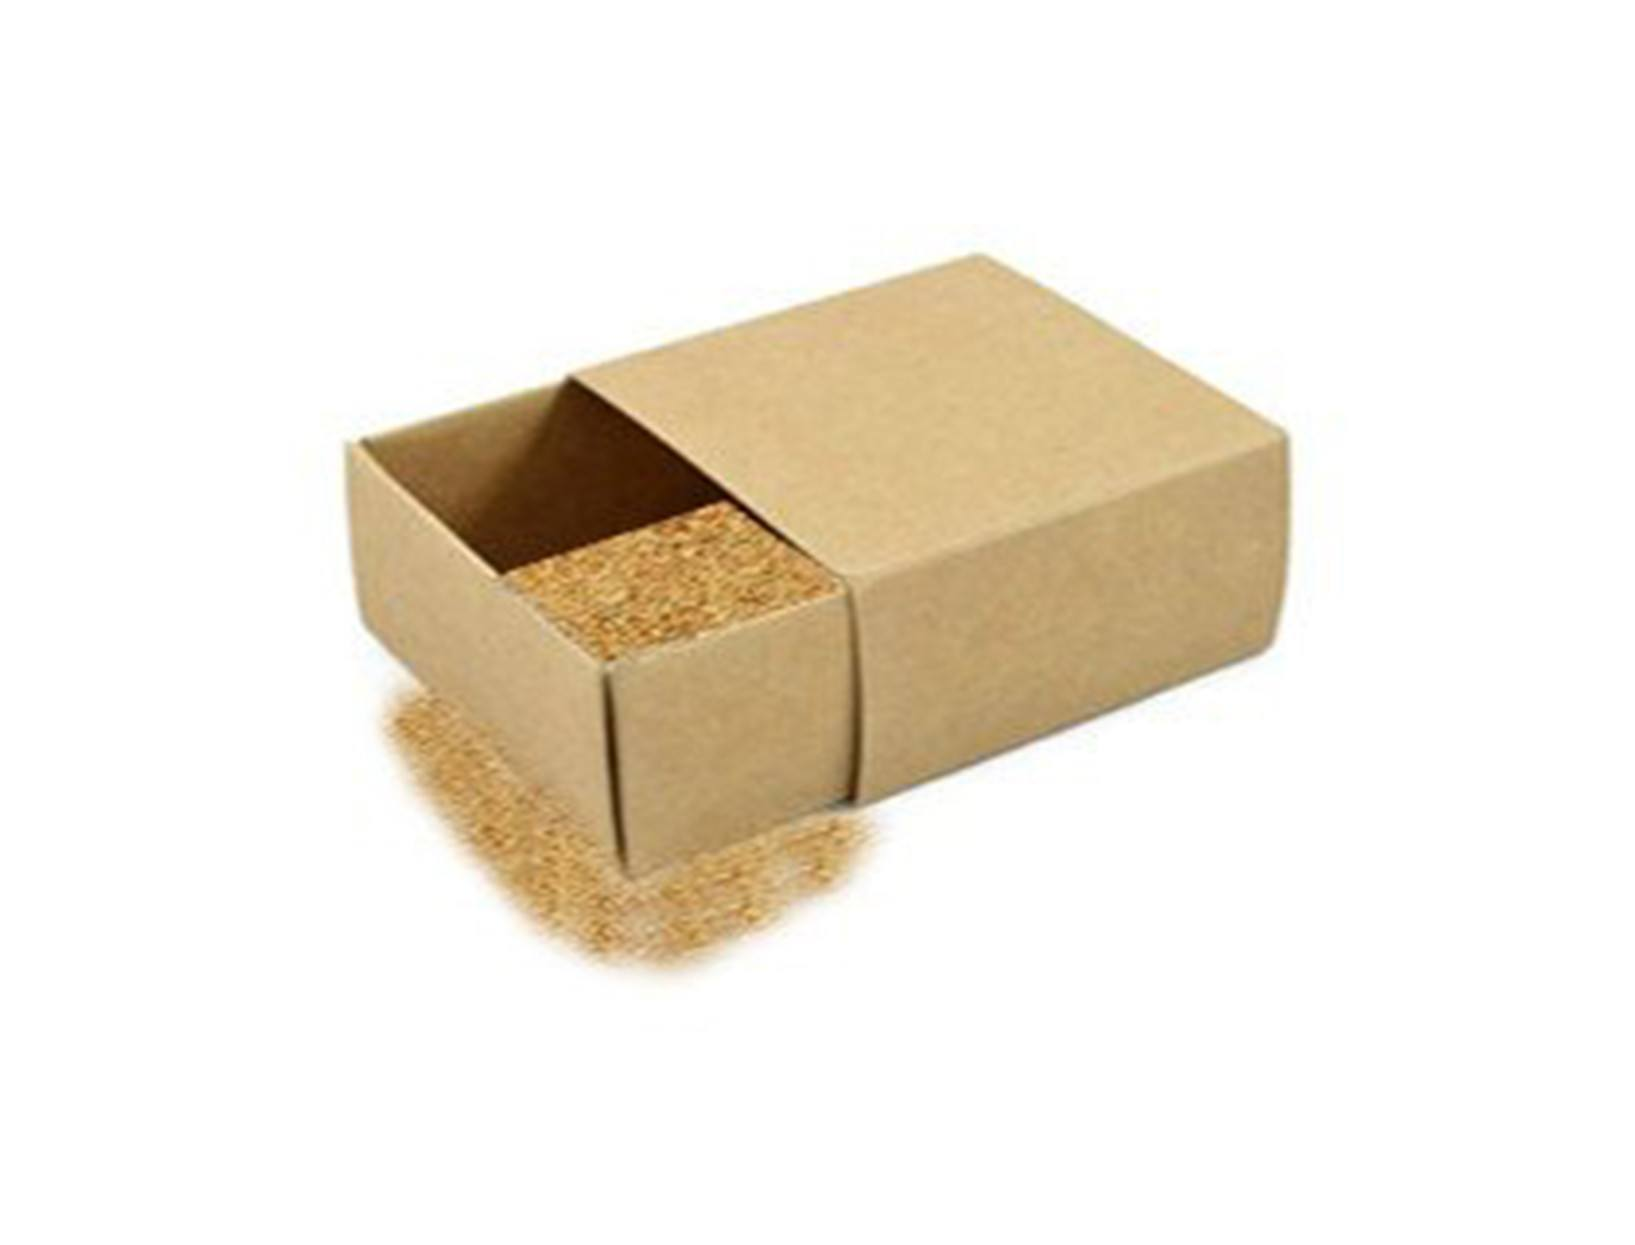 Annoying box of sand